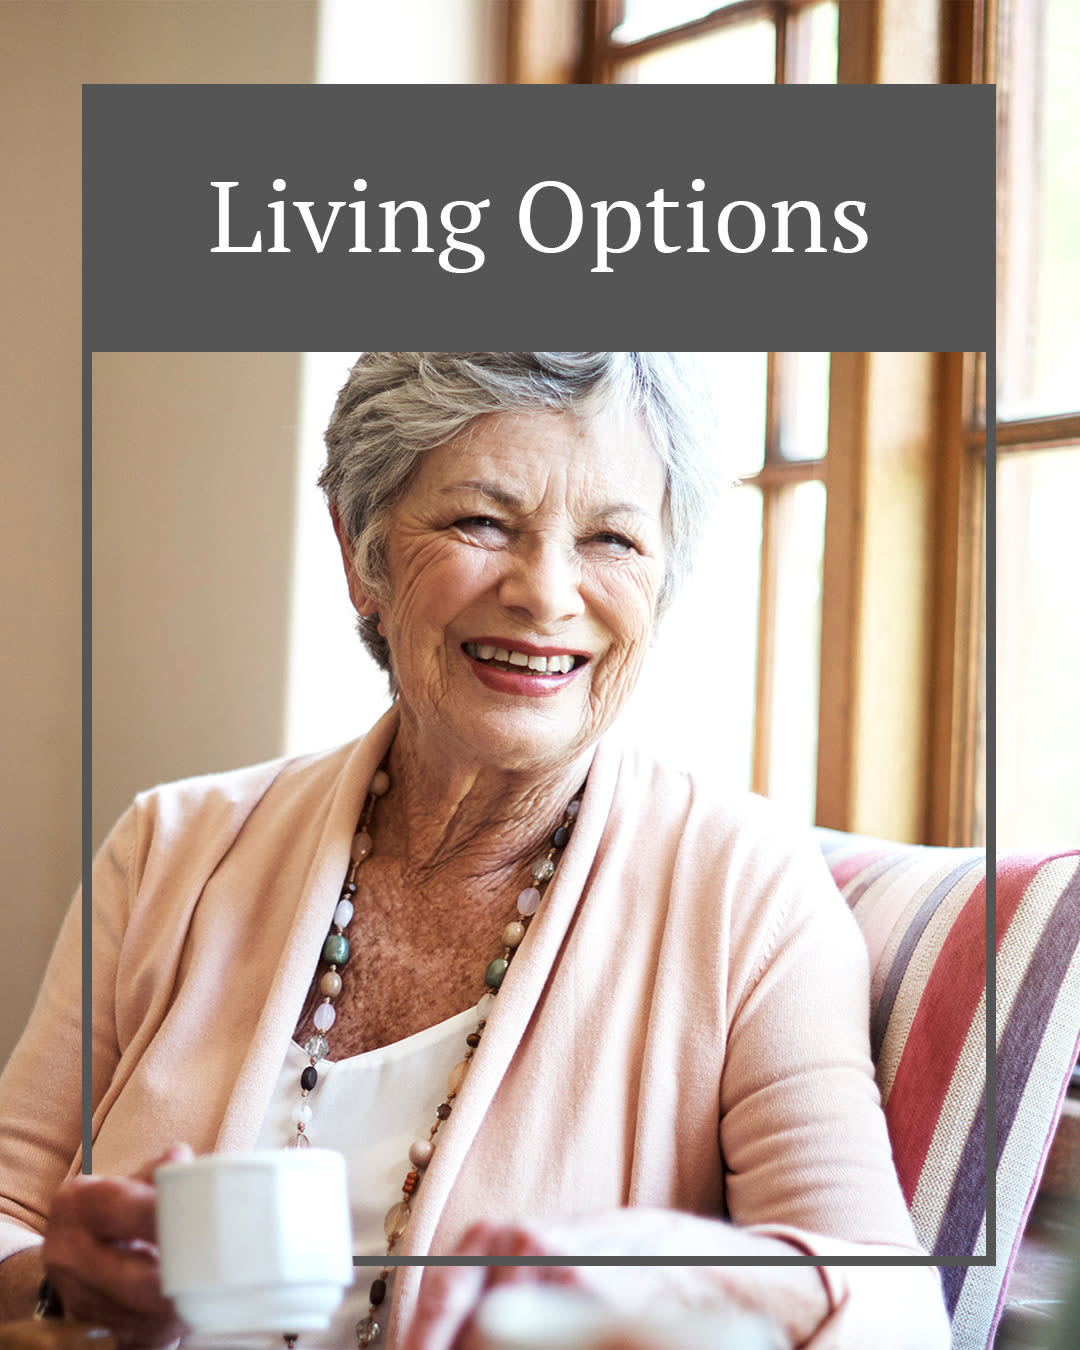 Living options at Village on the Park Friendswood in Friendswood, Texas